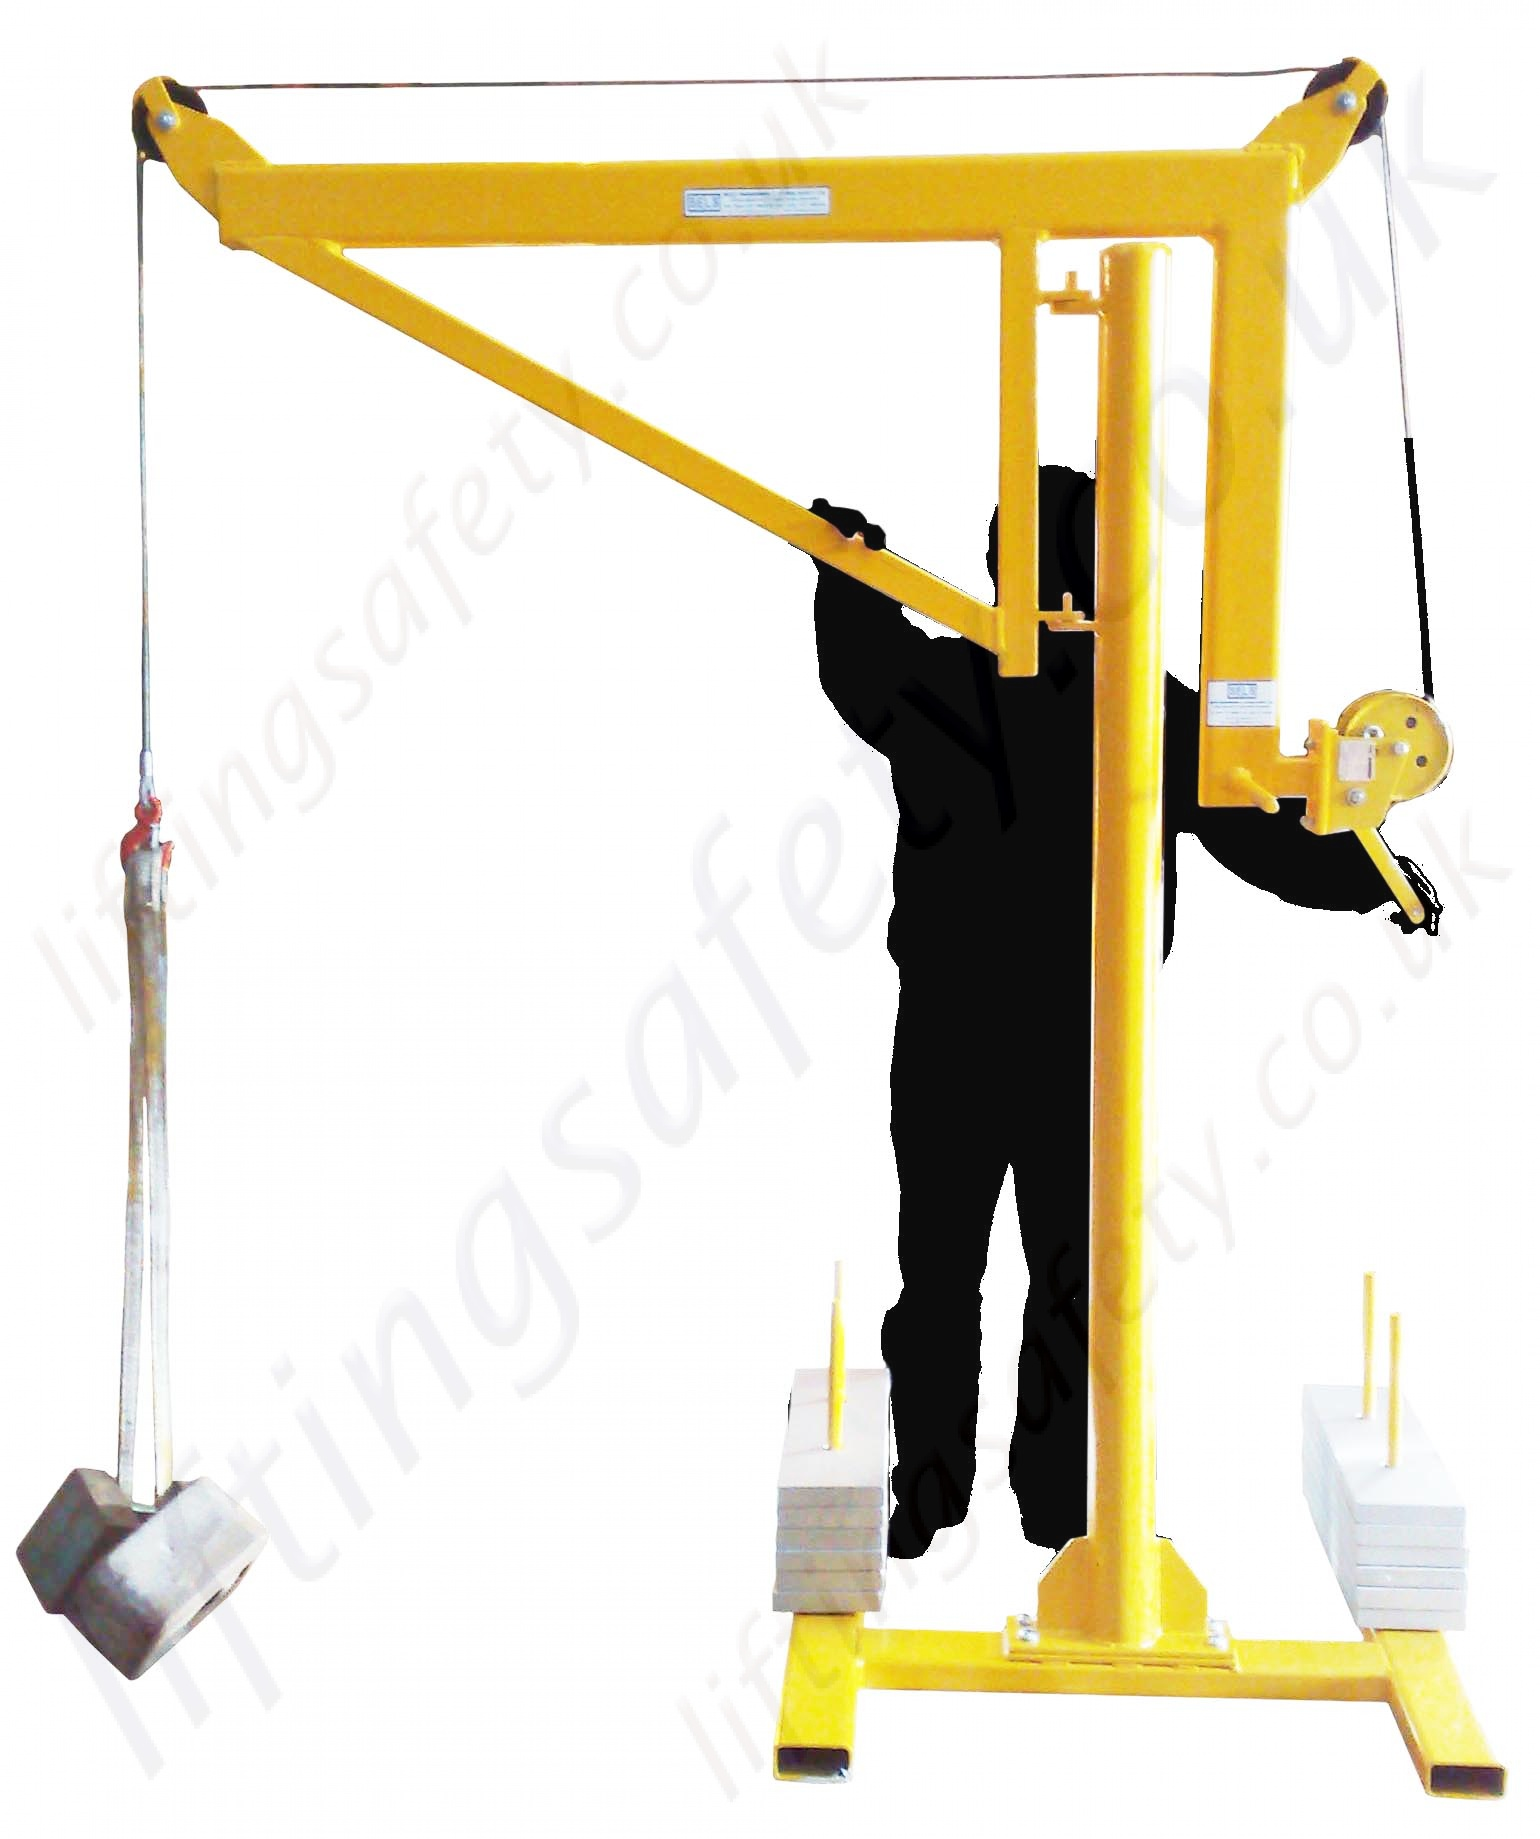 Swing Arm Lift For Pickup : Portable counterbalance free standing davit arm swing